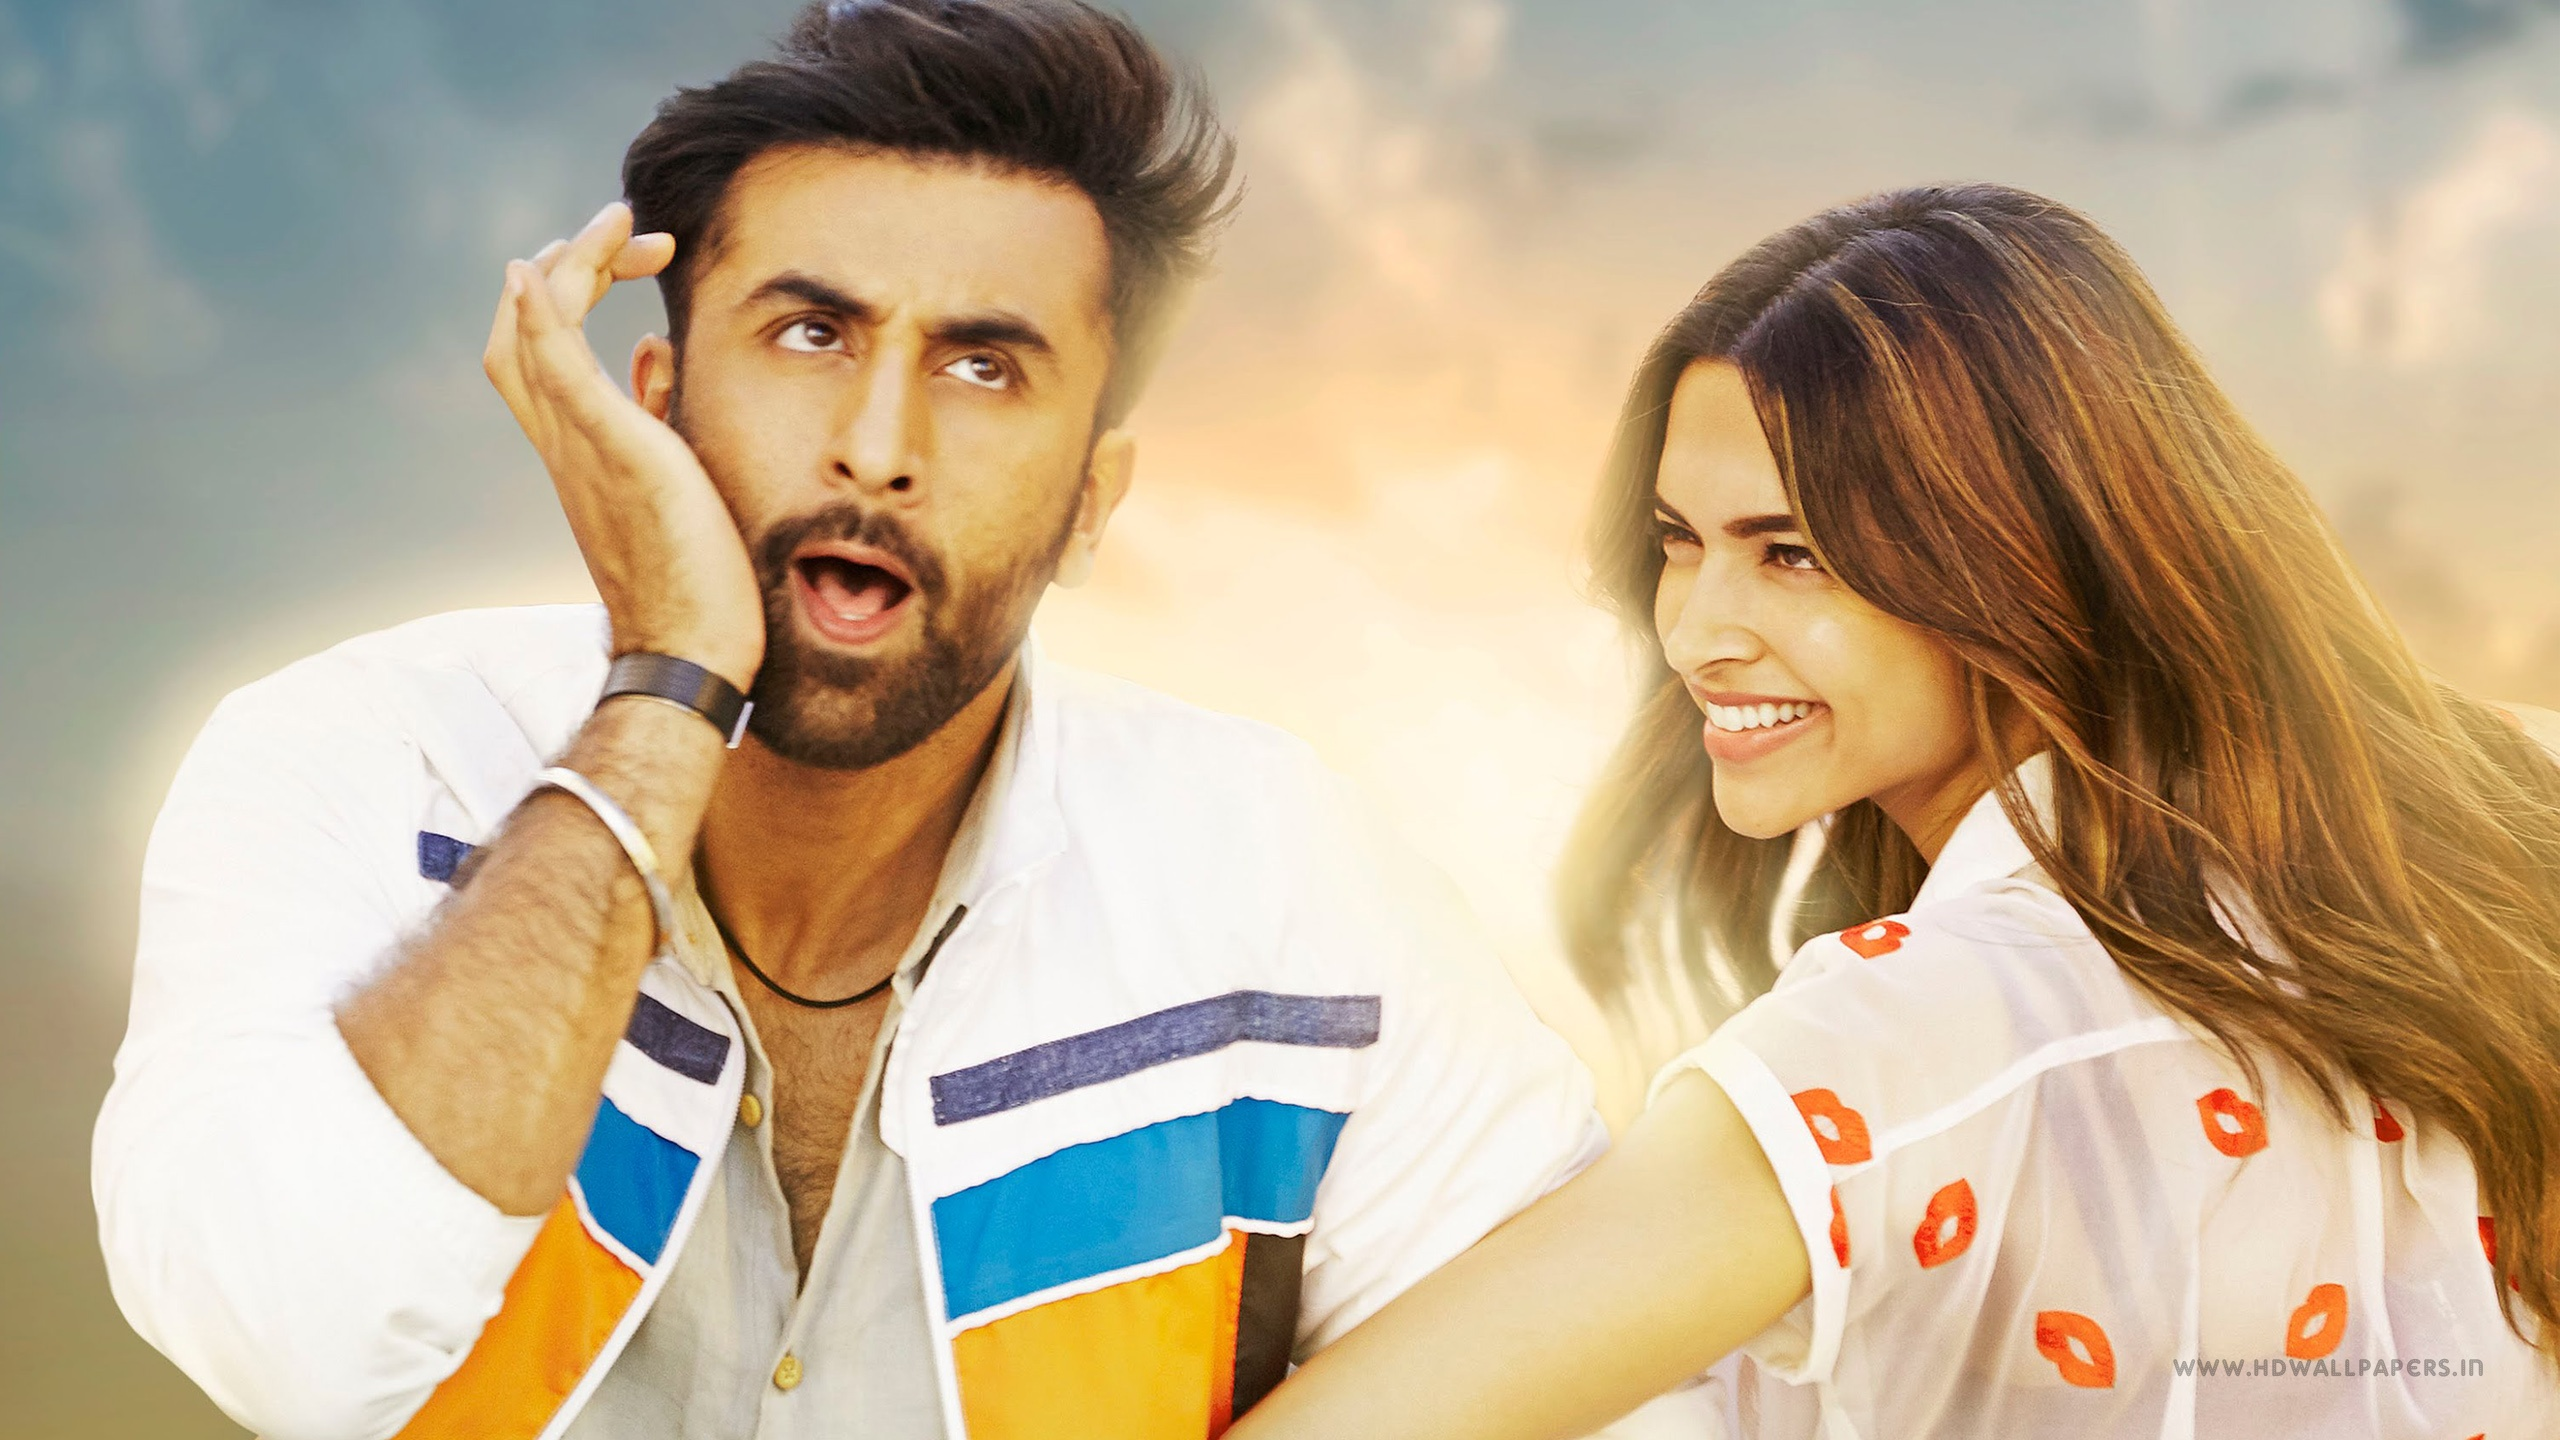 tamasha movie bollywood 2015 wallpapers in jpg format for free download